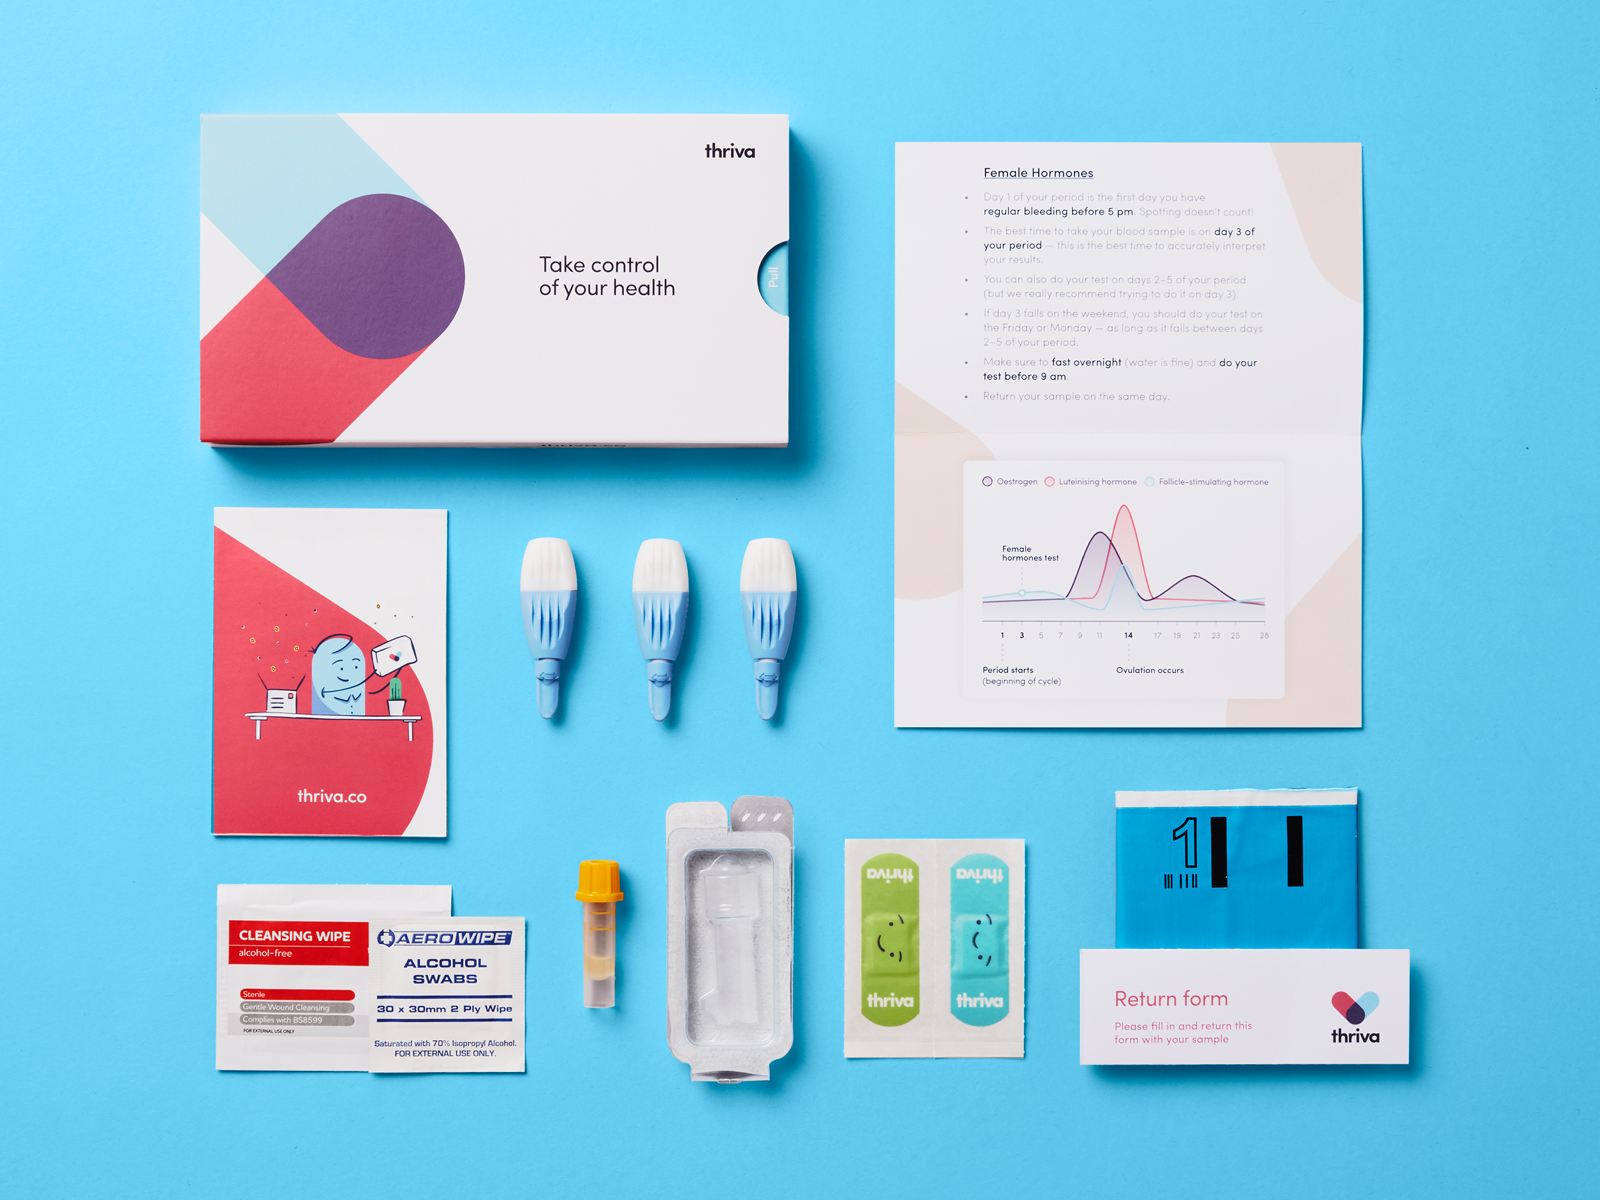 The packaging designed for Thriva's menopause blood test.